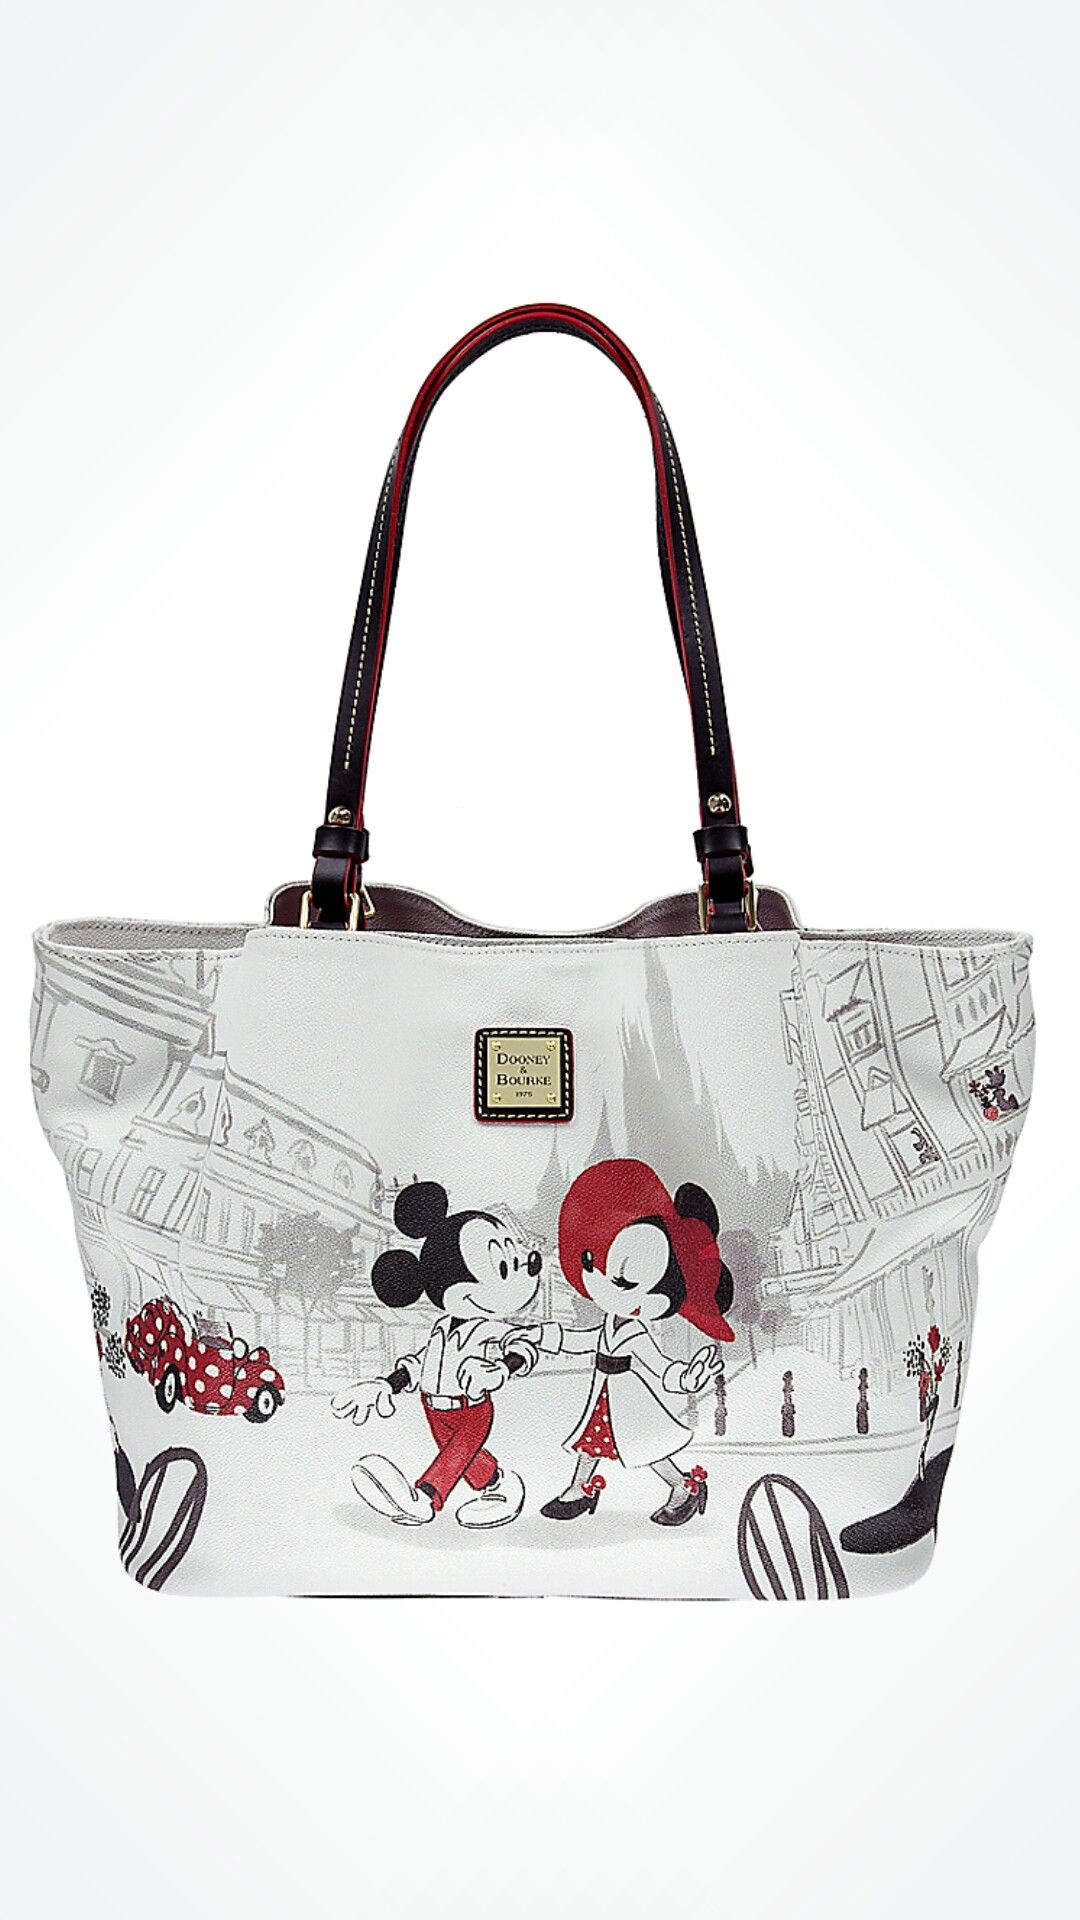 c51e08879883 Minnie Cafe Tote by Dooney   Bourke Just in time for Valentine s Day!  Released on February 13